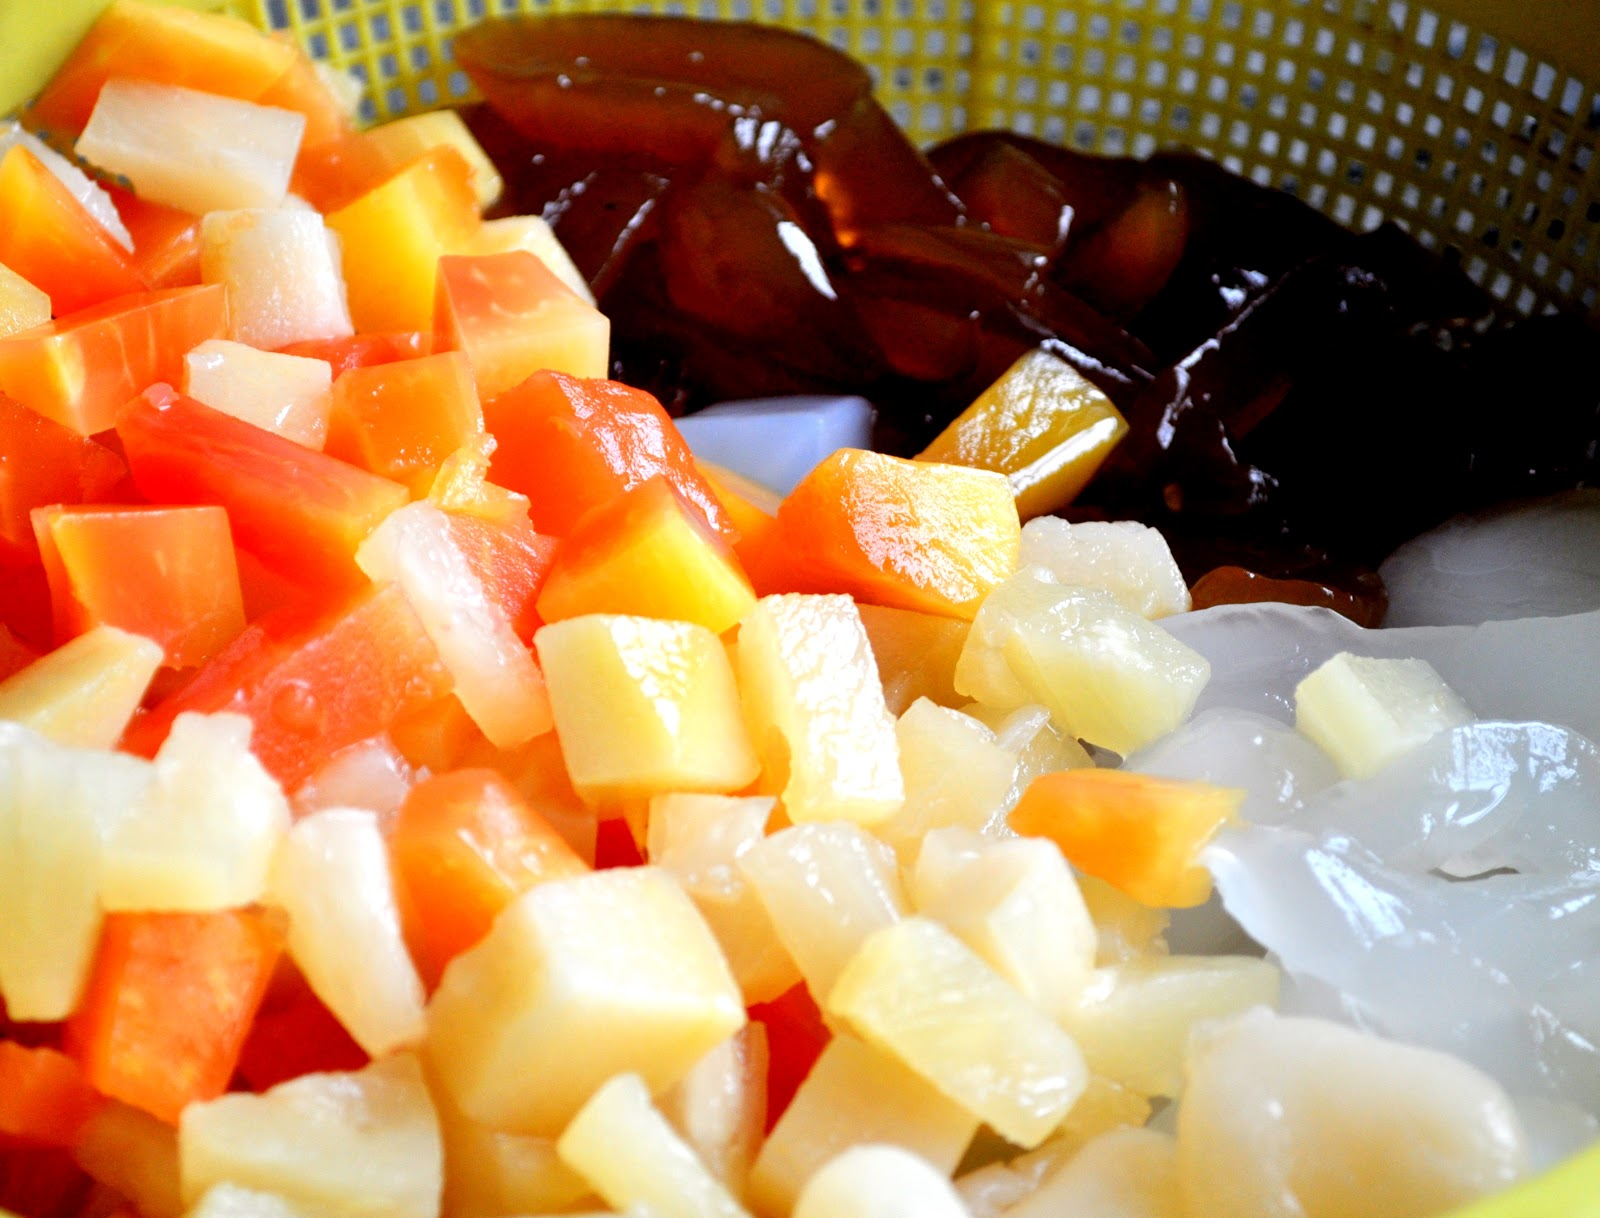 Filipino Style Fruit Salad http://www.premascook.com/2011/04/macaroni-fruit-salad-filipino-style.html